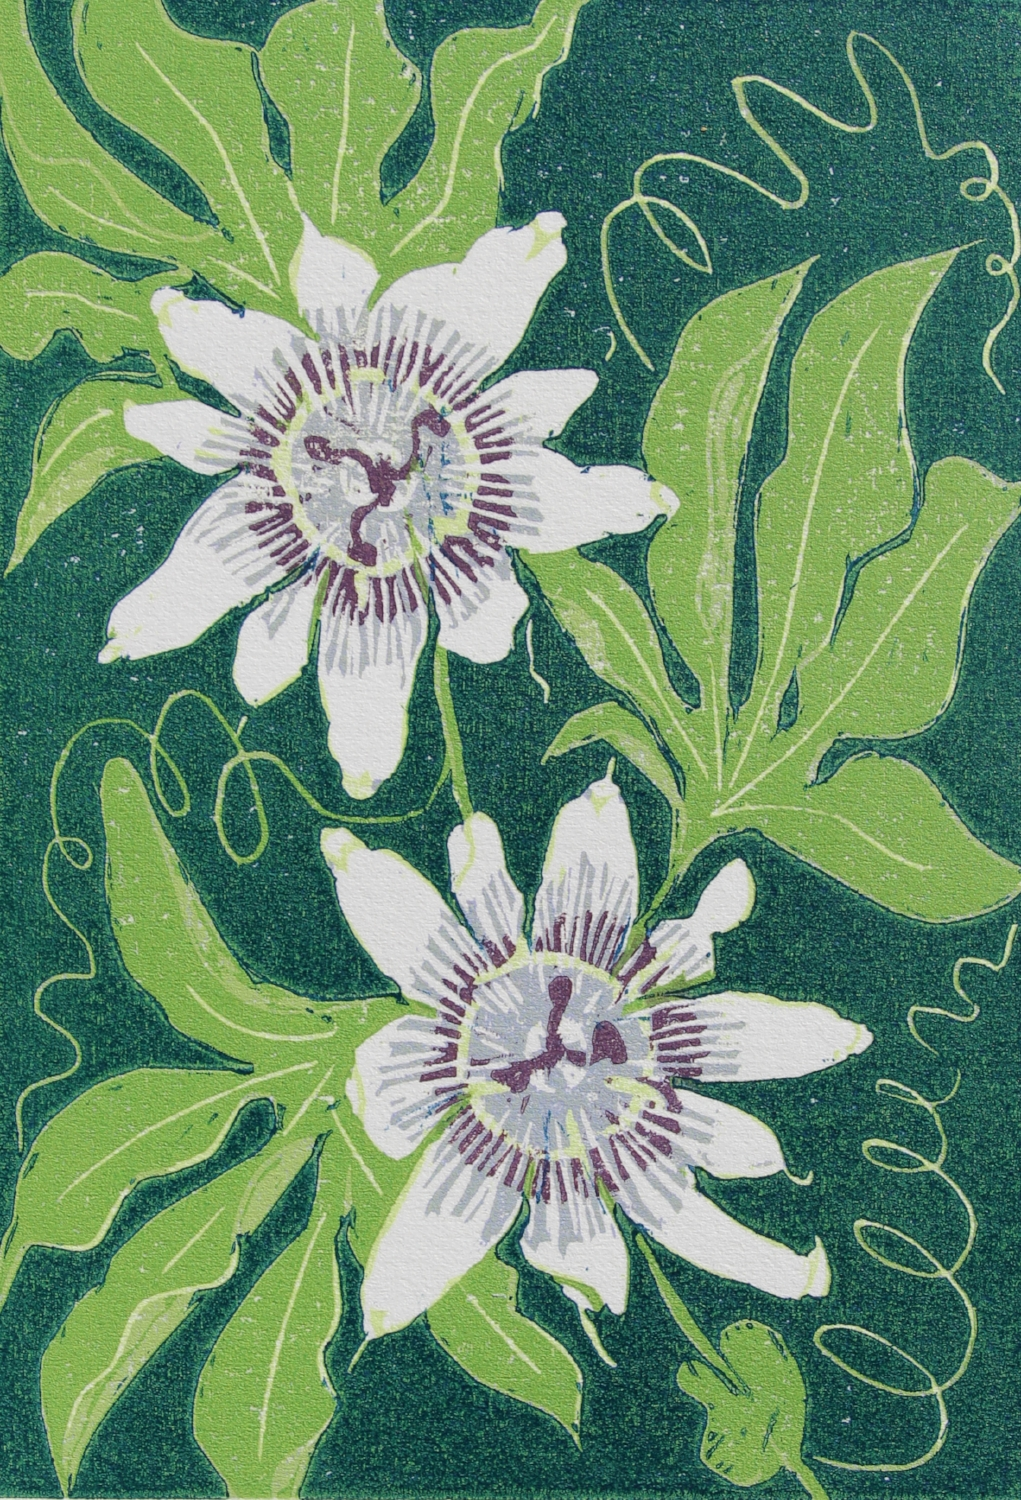 'Passionflower'